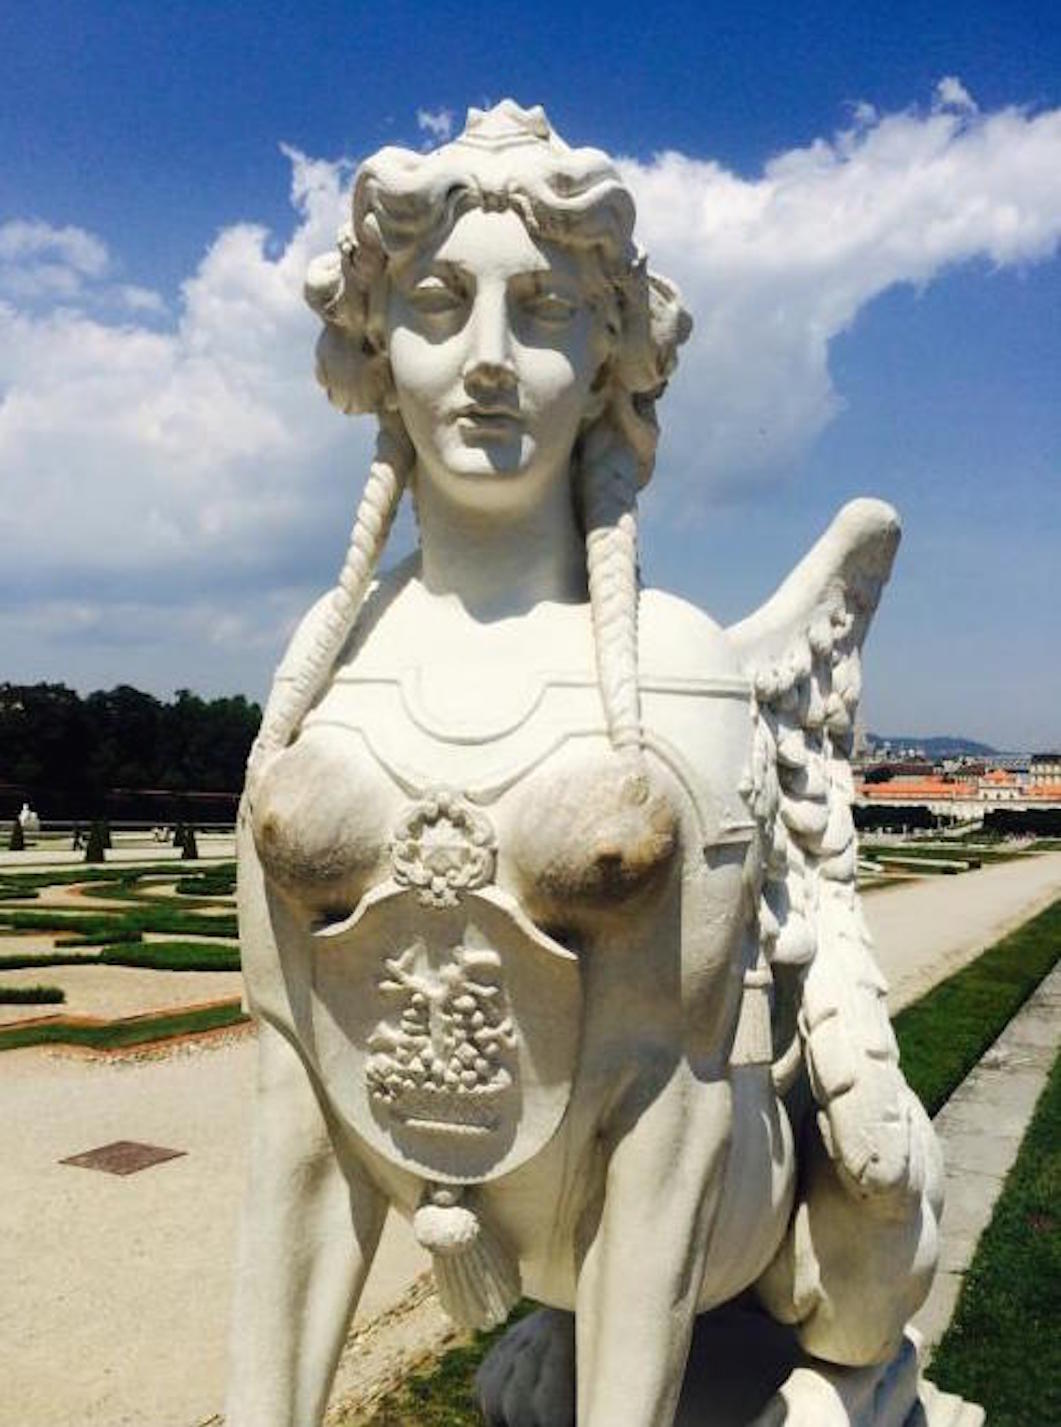 Statue of a Sphinx at Belvedere Palace in Vienna, Austria